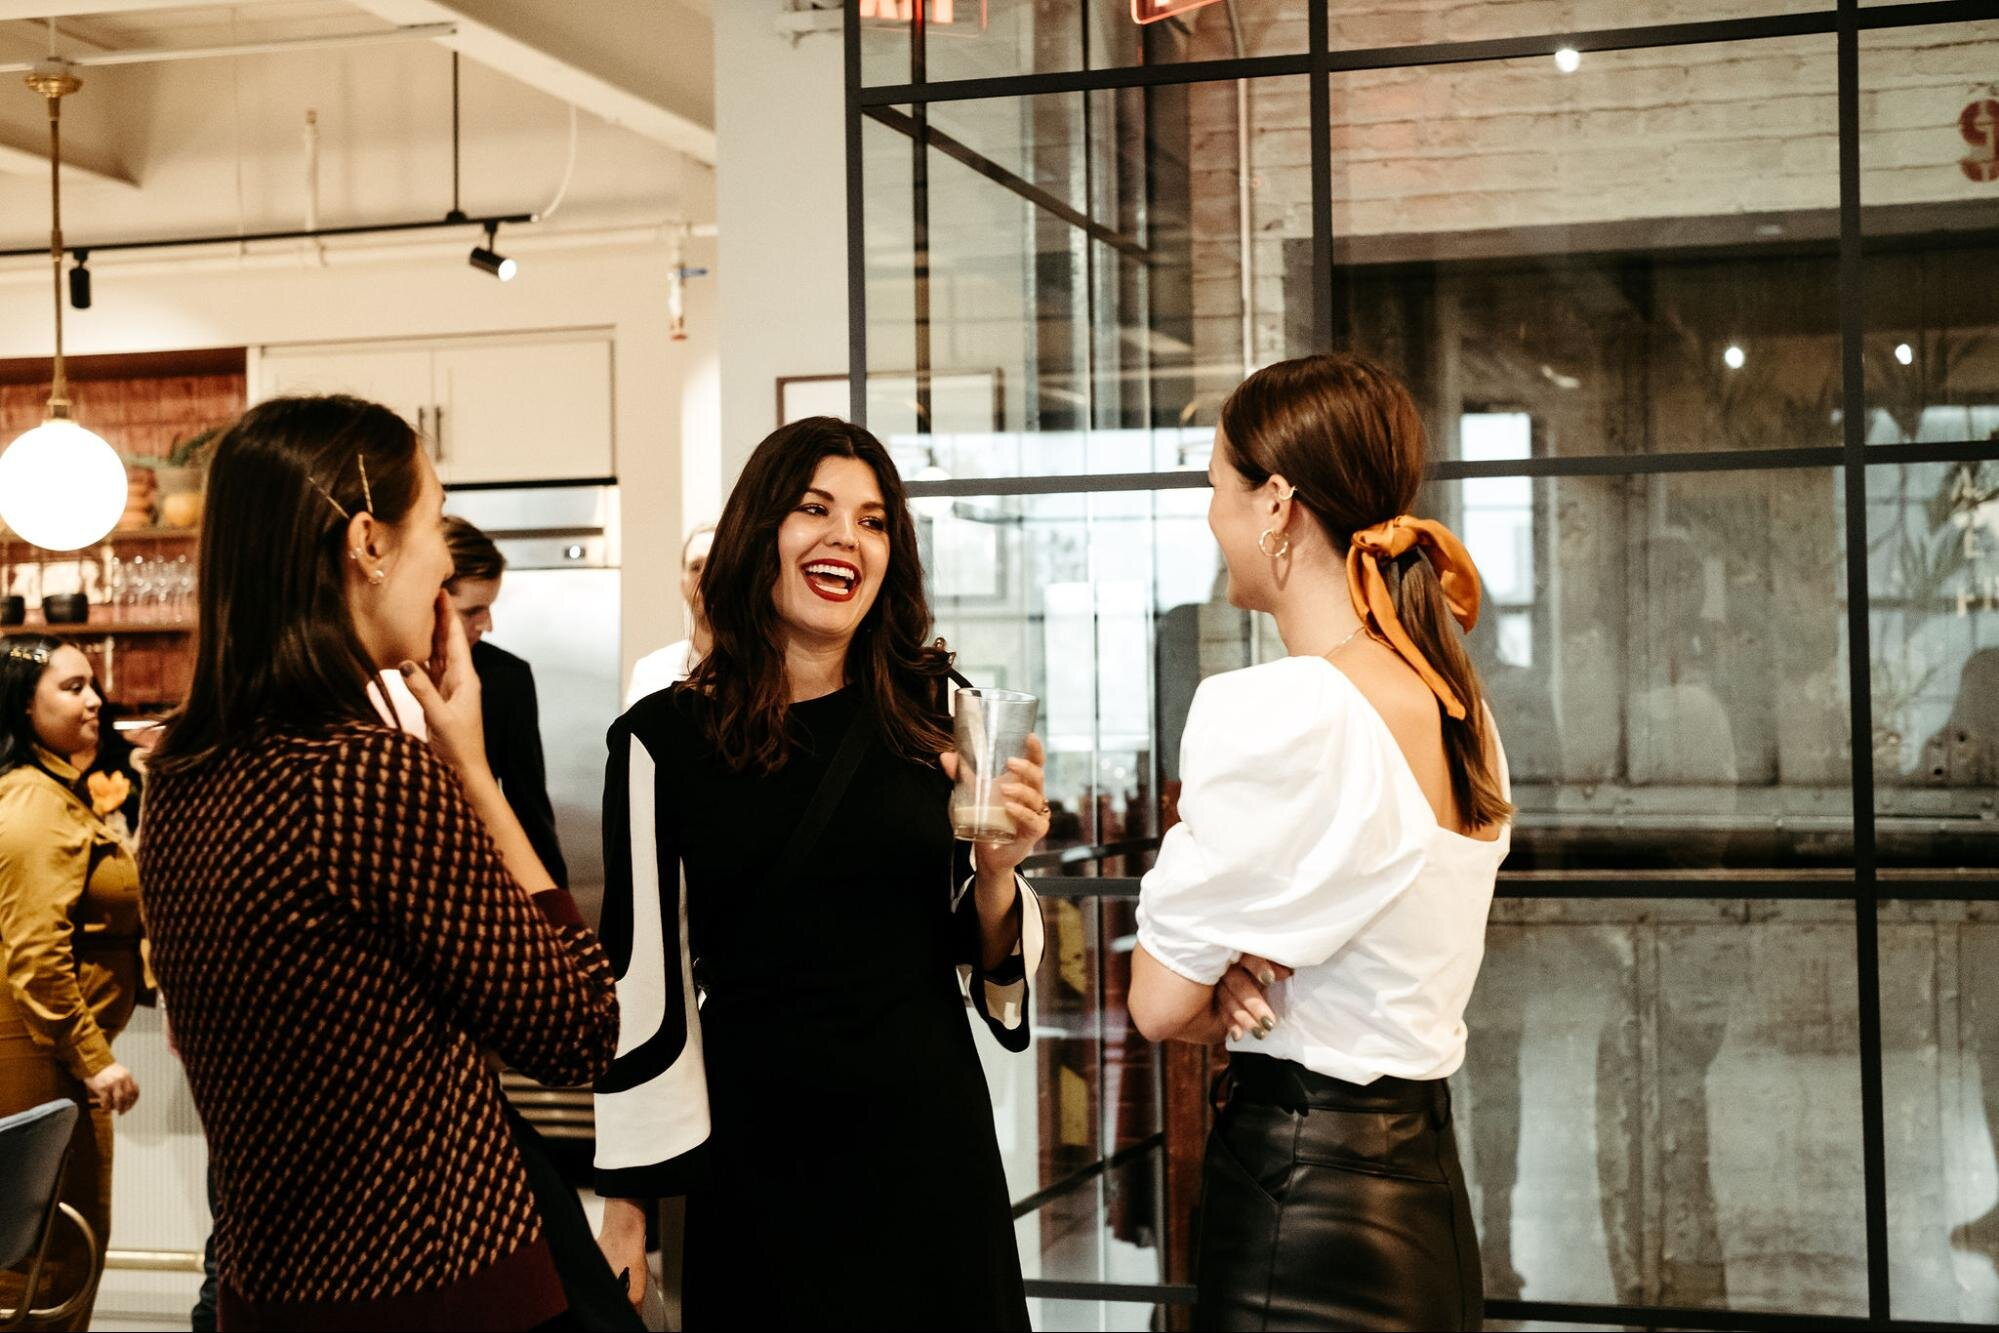 Three female coworkers communicating at work